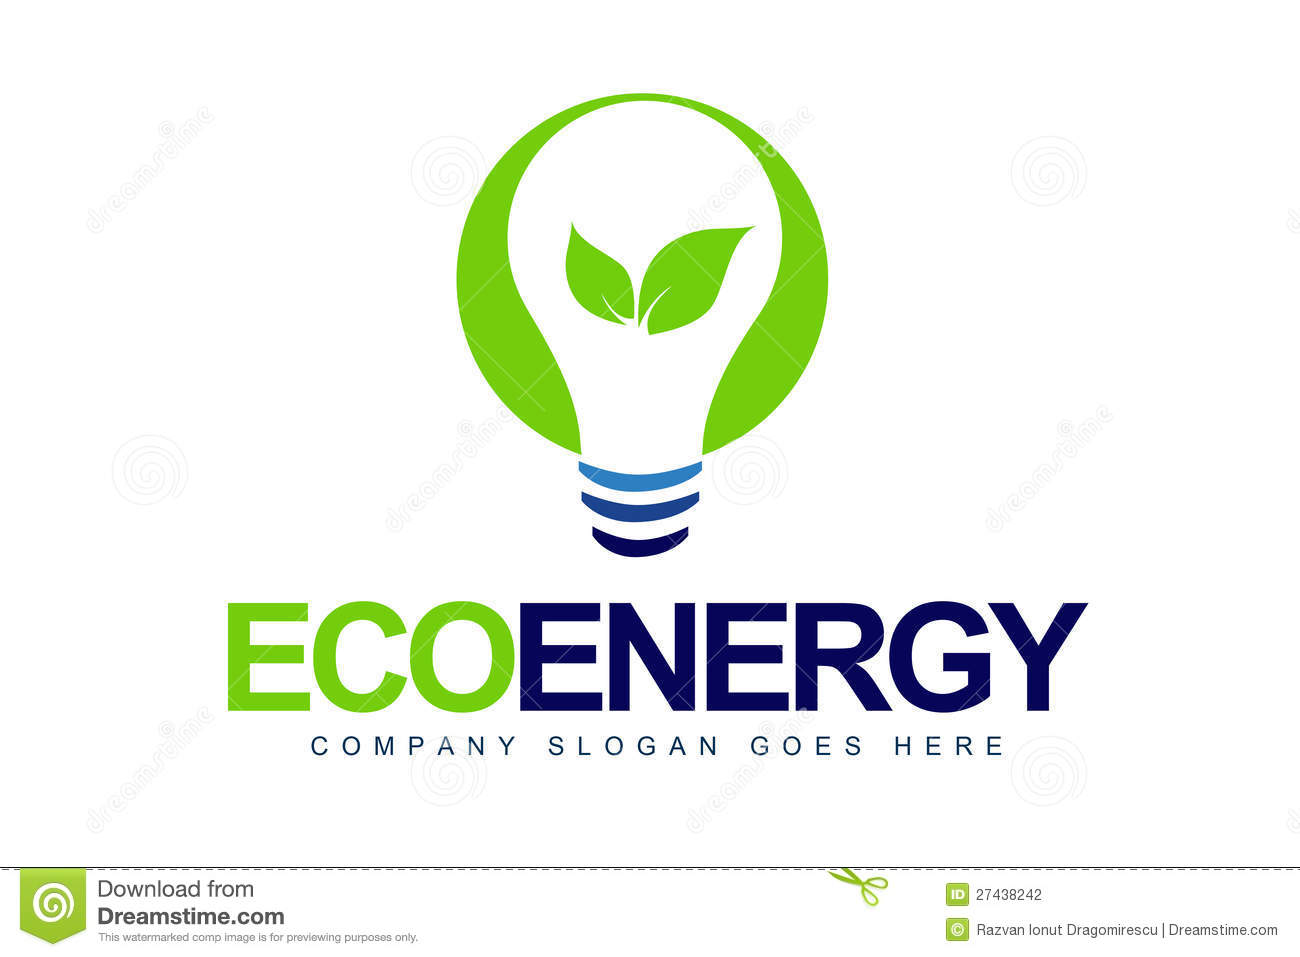 An illustration of a logo representing green energy concept.